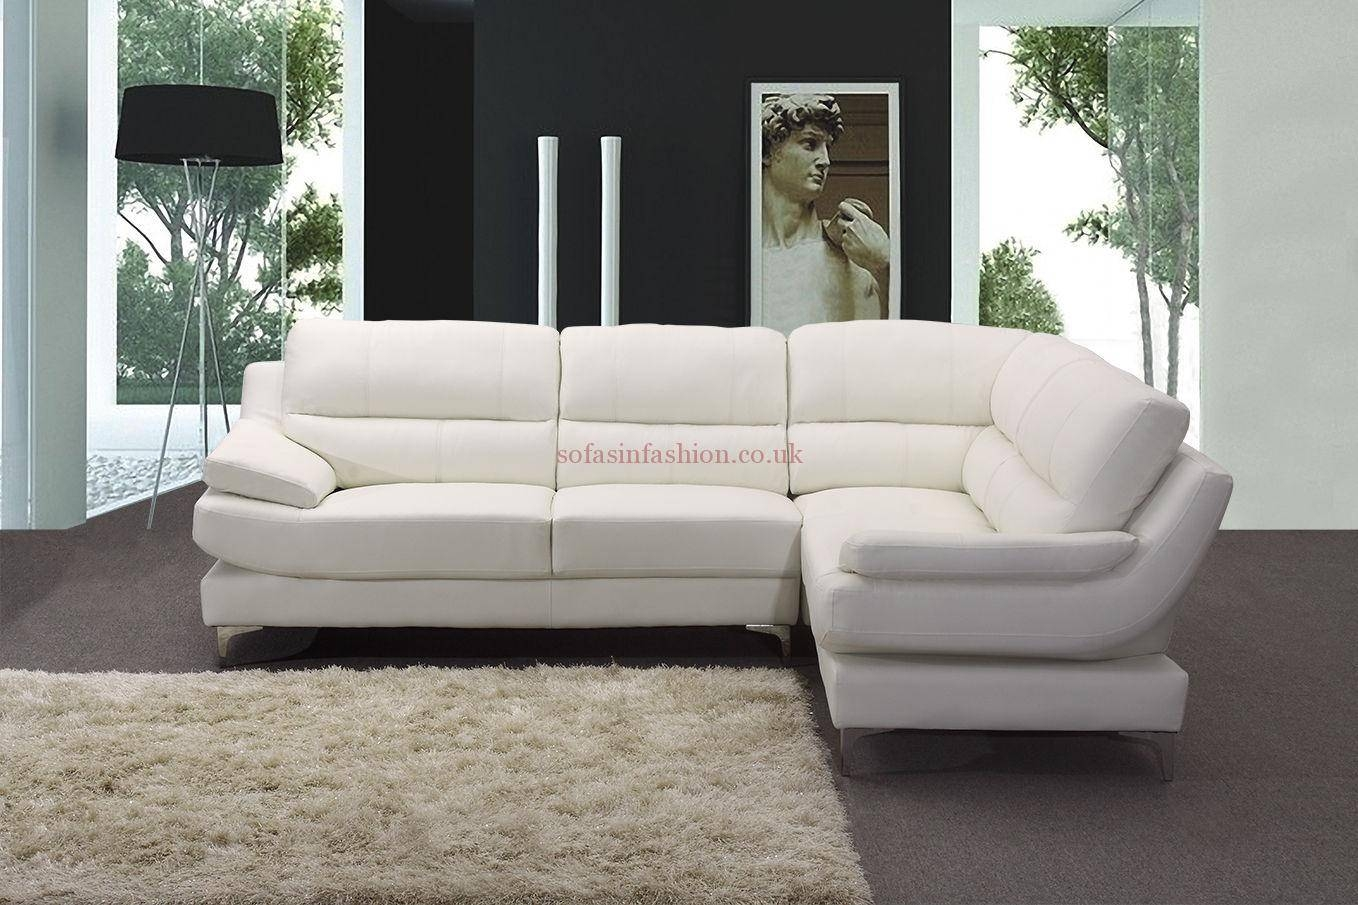 Best Leather Corner Sofas With Leather Corner Sofa Black White with regard to Large Black Leather Corner Sofas (Image 3 of 30)